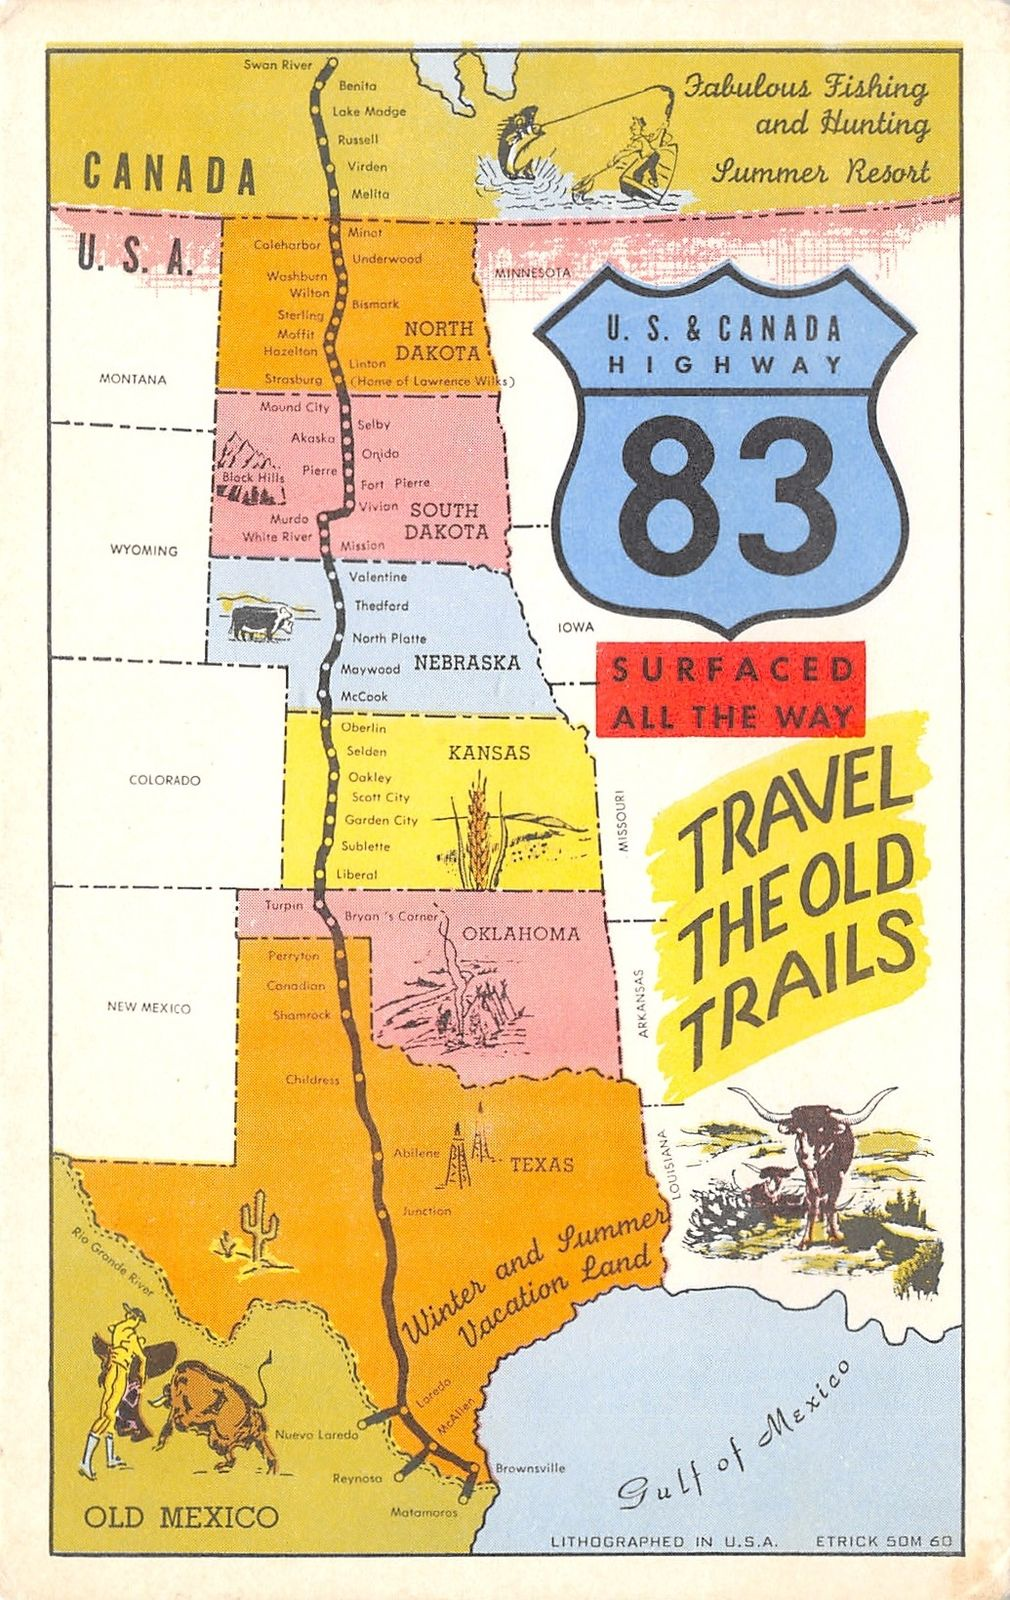 US & Canada Highway 83 Map Postcard~Travel Old Cattle Trail ... Cattle Trail Map on cattle trail history, cattle trail jobs, cattle drive maps, cattle trail clip art, cattle trail names,